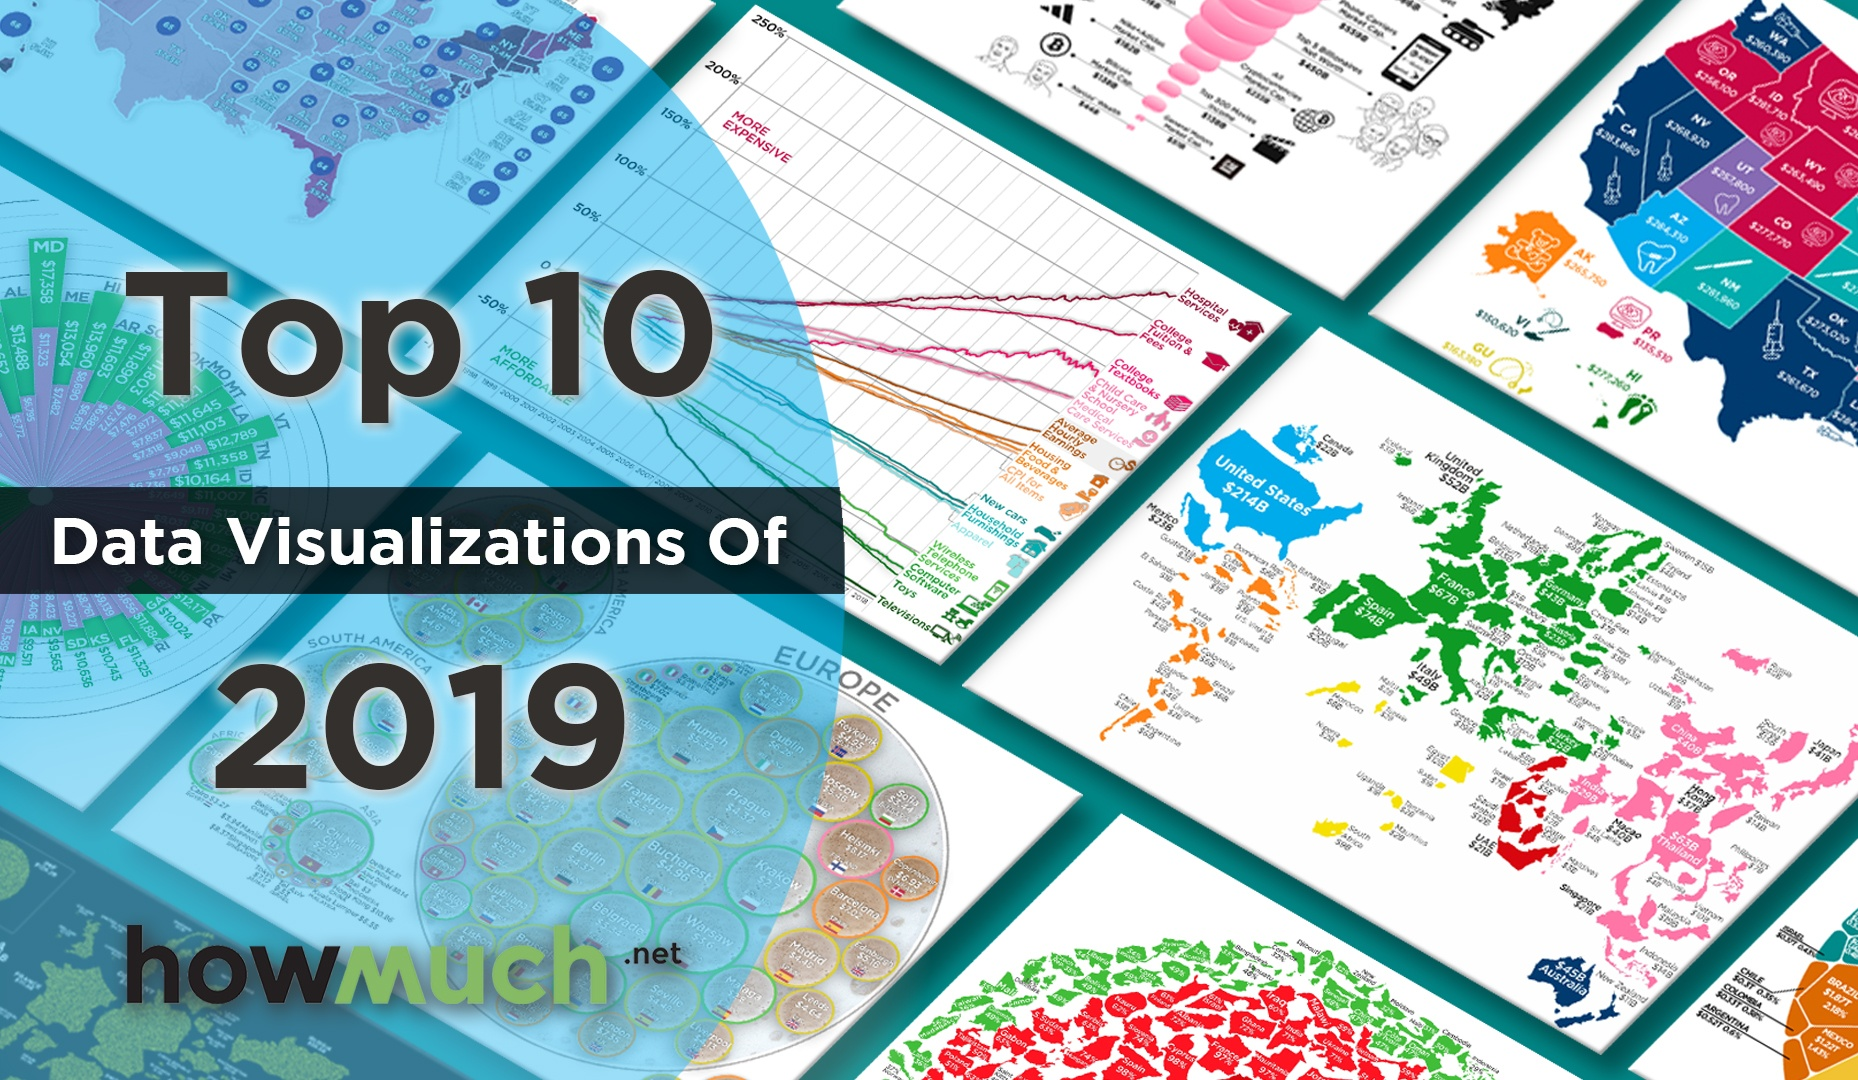 Top 10 Data Visualizations of 2019